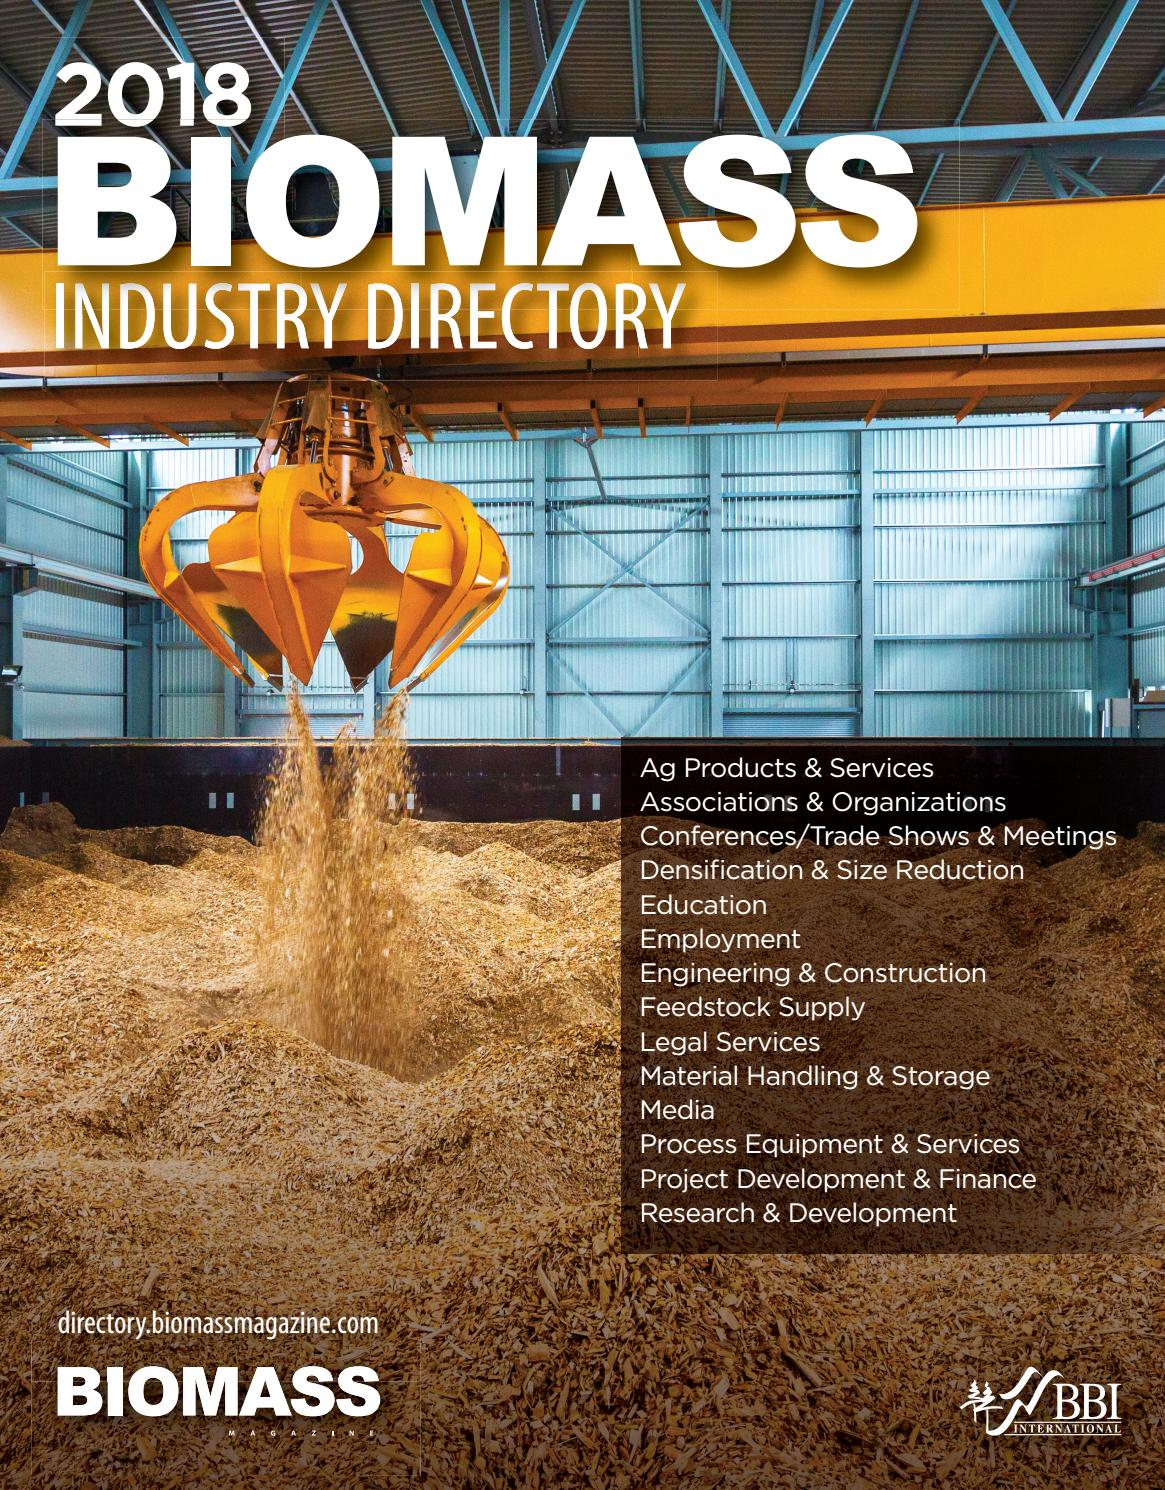 2018 Biomass Industry Directory by BBI